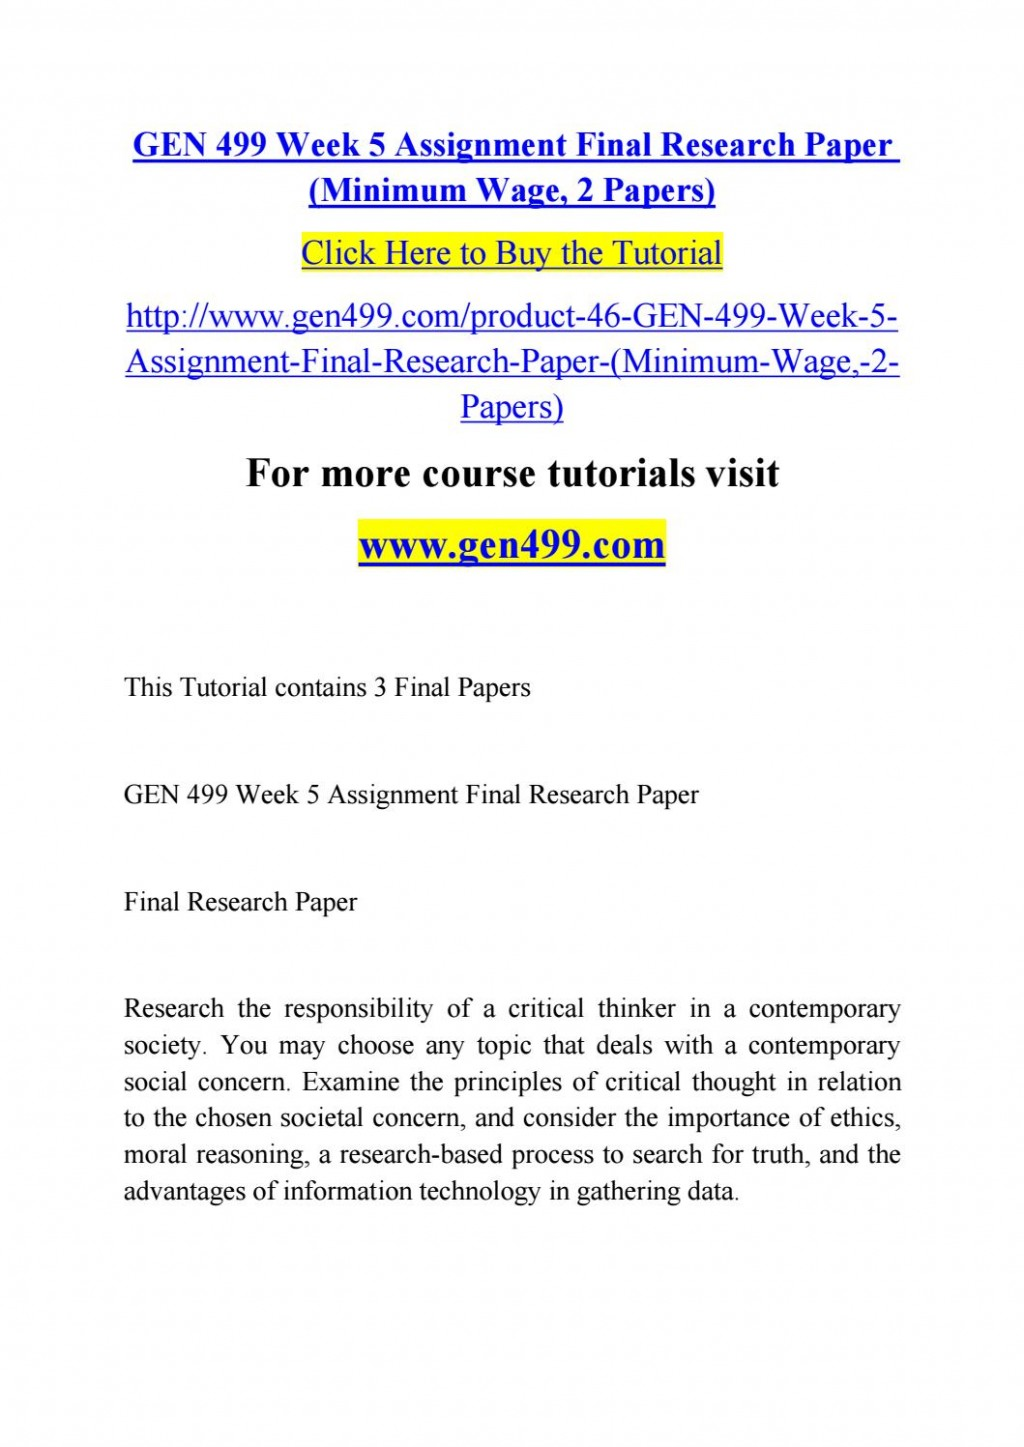 017 Research Paper Page 1 Minimum Wage Astounding Topics Large